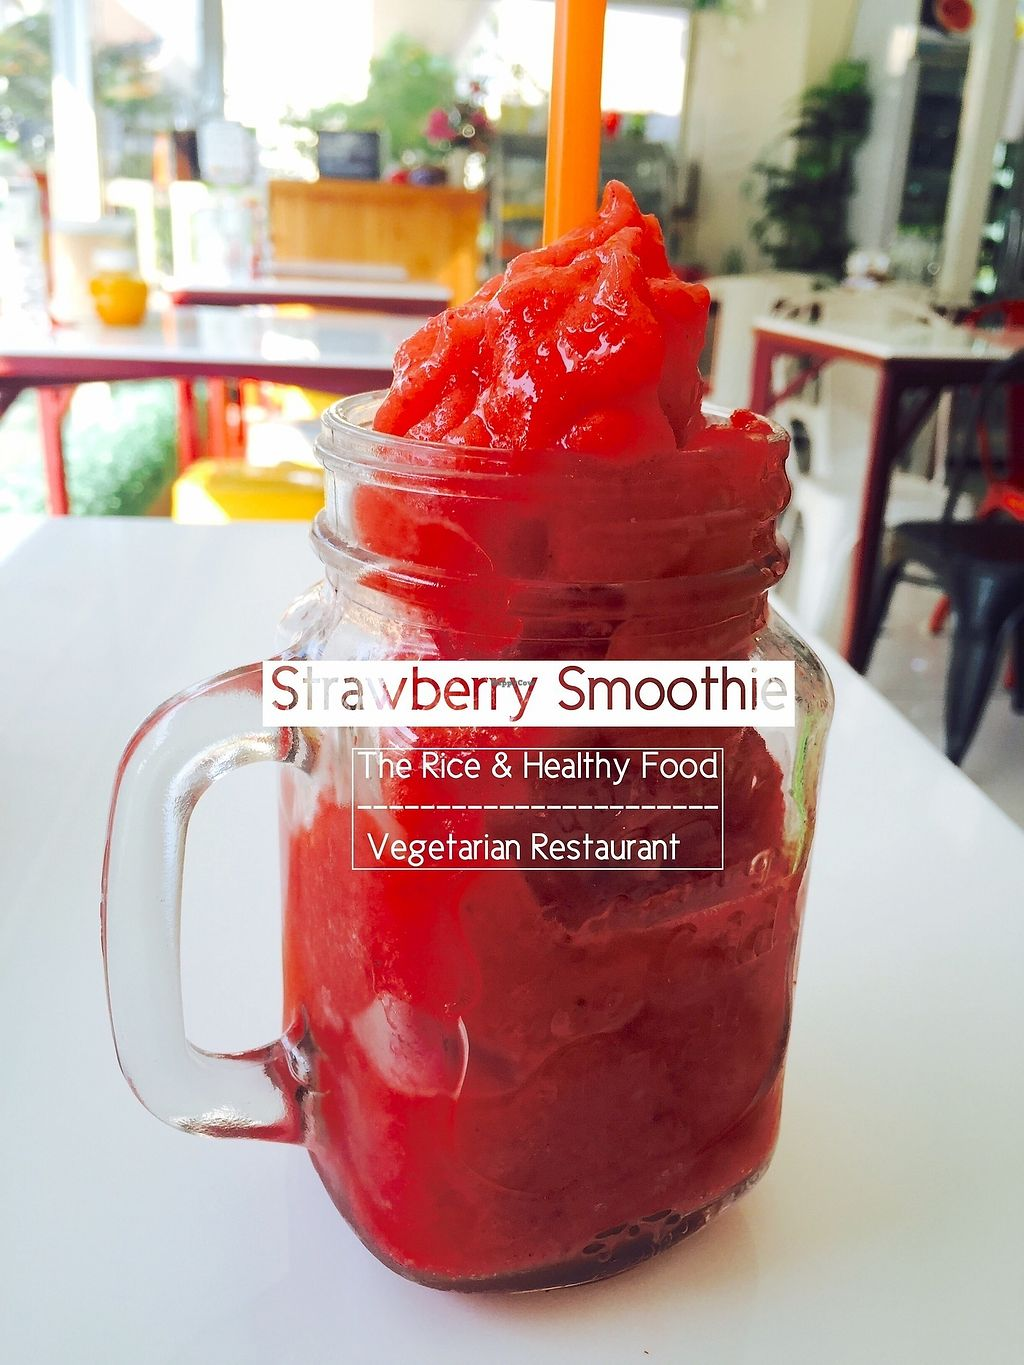 """Photo of The Rice and Healthy Food  by <a href=""""/members/profile/tamontim"""">tamontim</a> <br/>Strawberry smoothie <br/> July 8, 2017  - <a href='/contact/abuse/image/46314/277755'>Report</a>"""